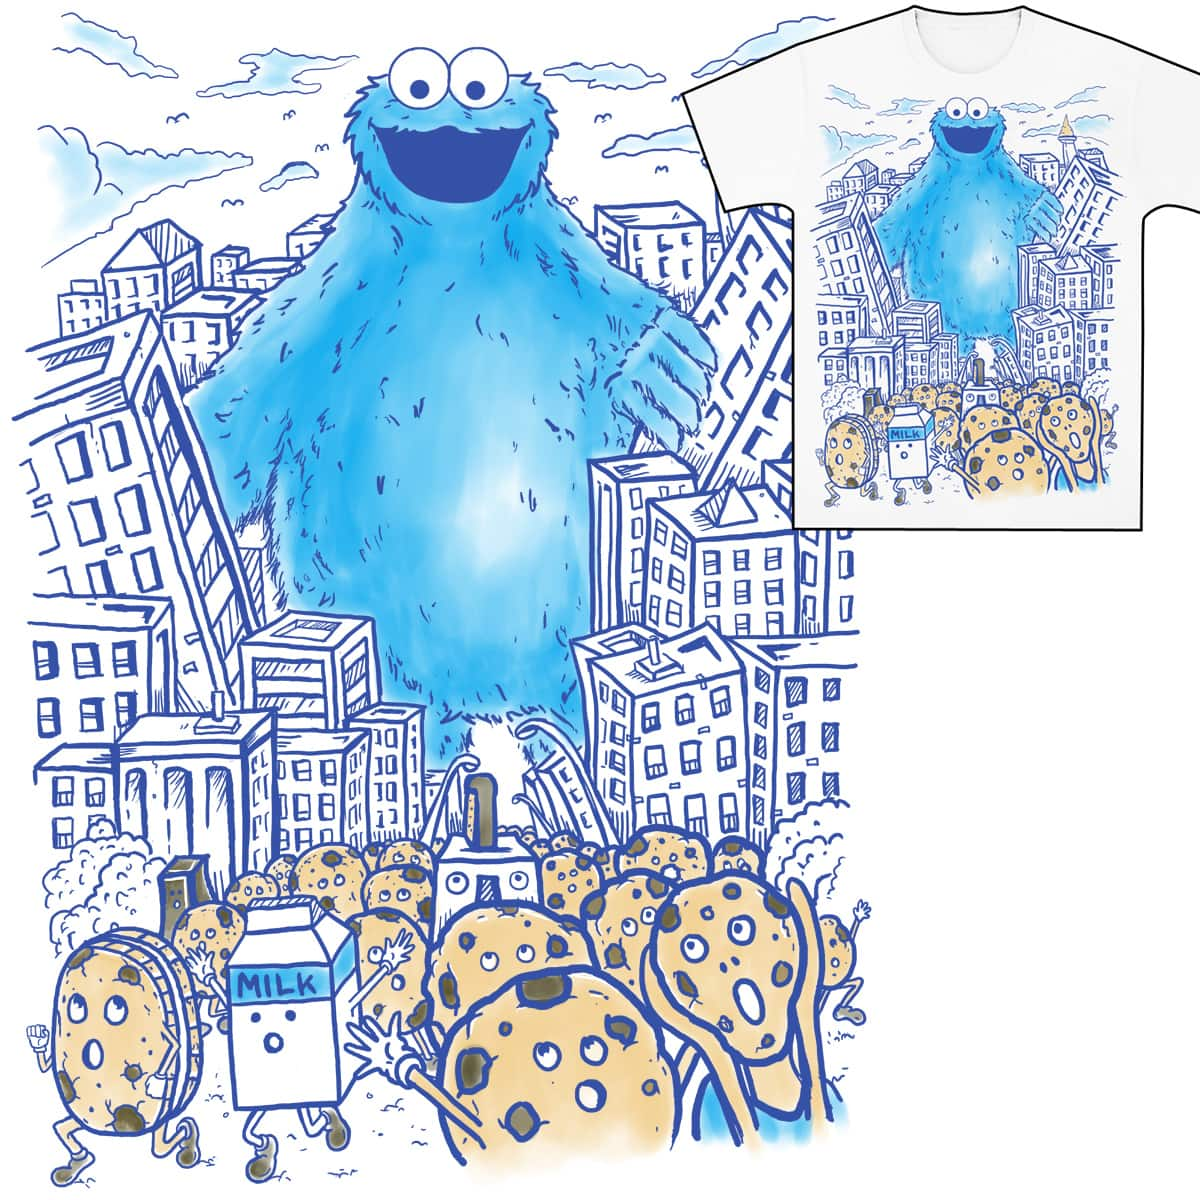 Monster in the city by fathi on Threadless